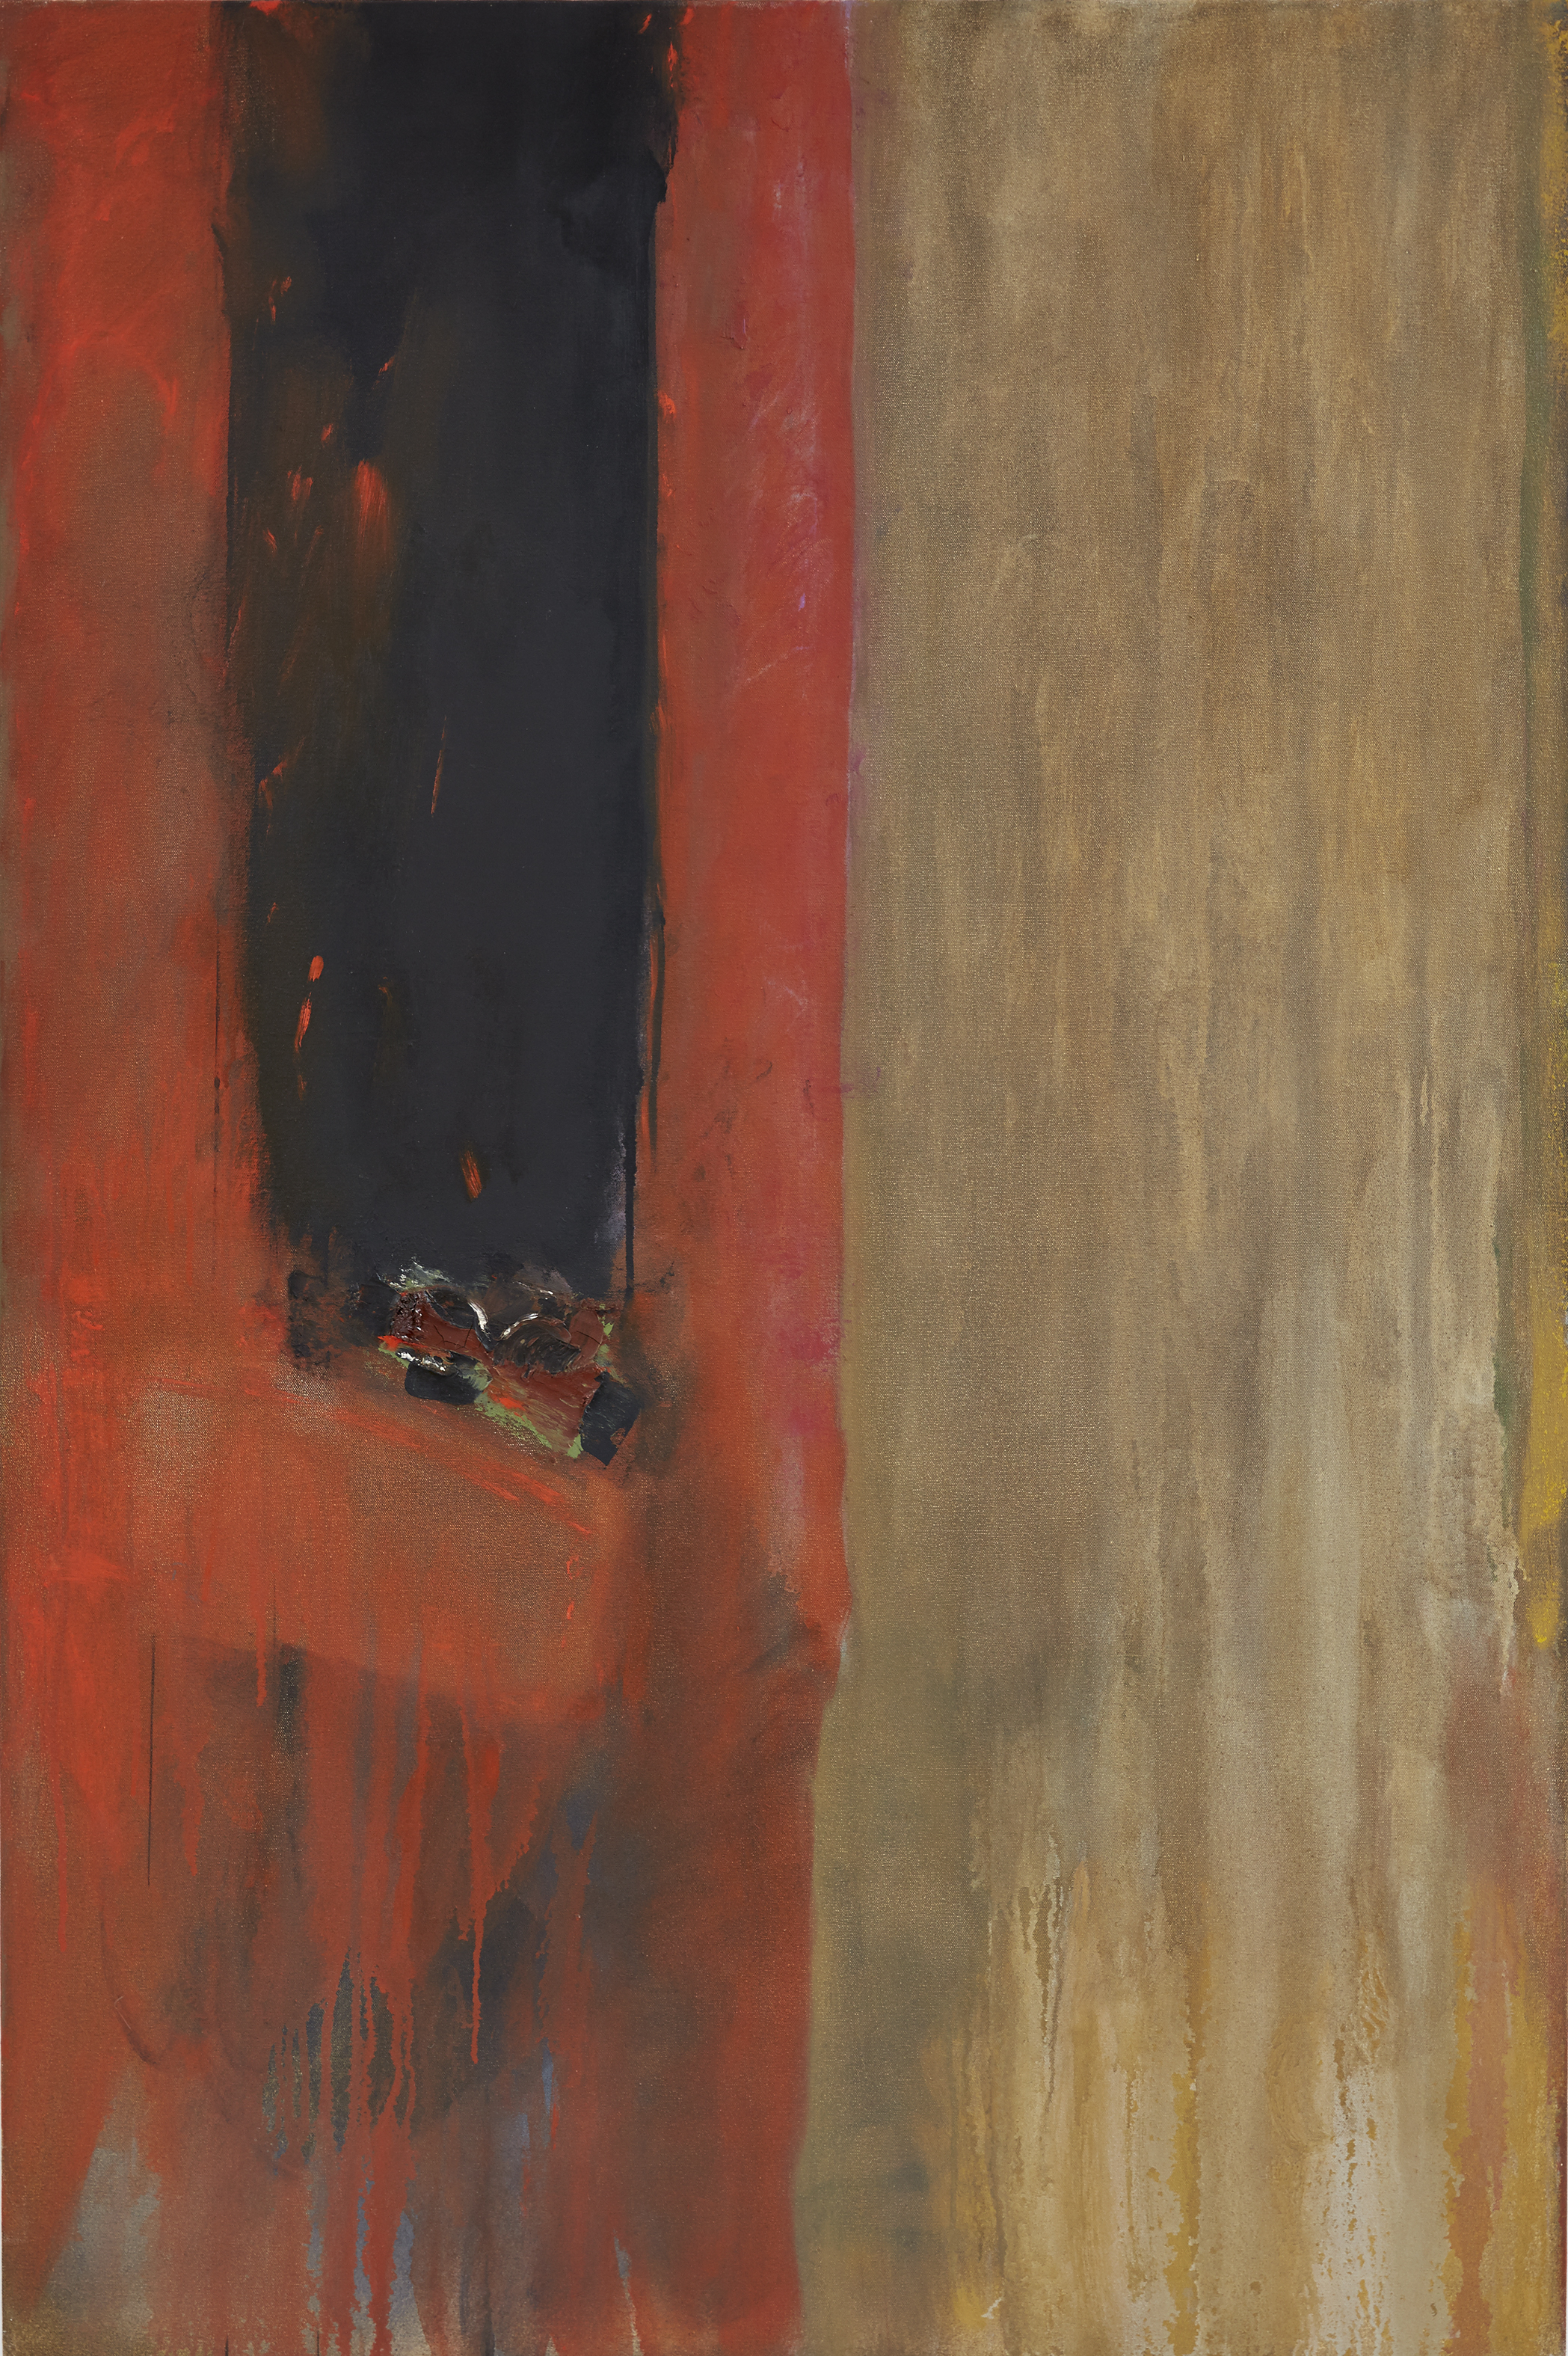 Untitled (Red & Black)